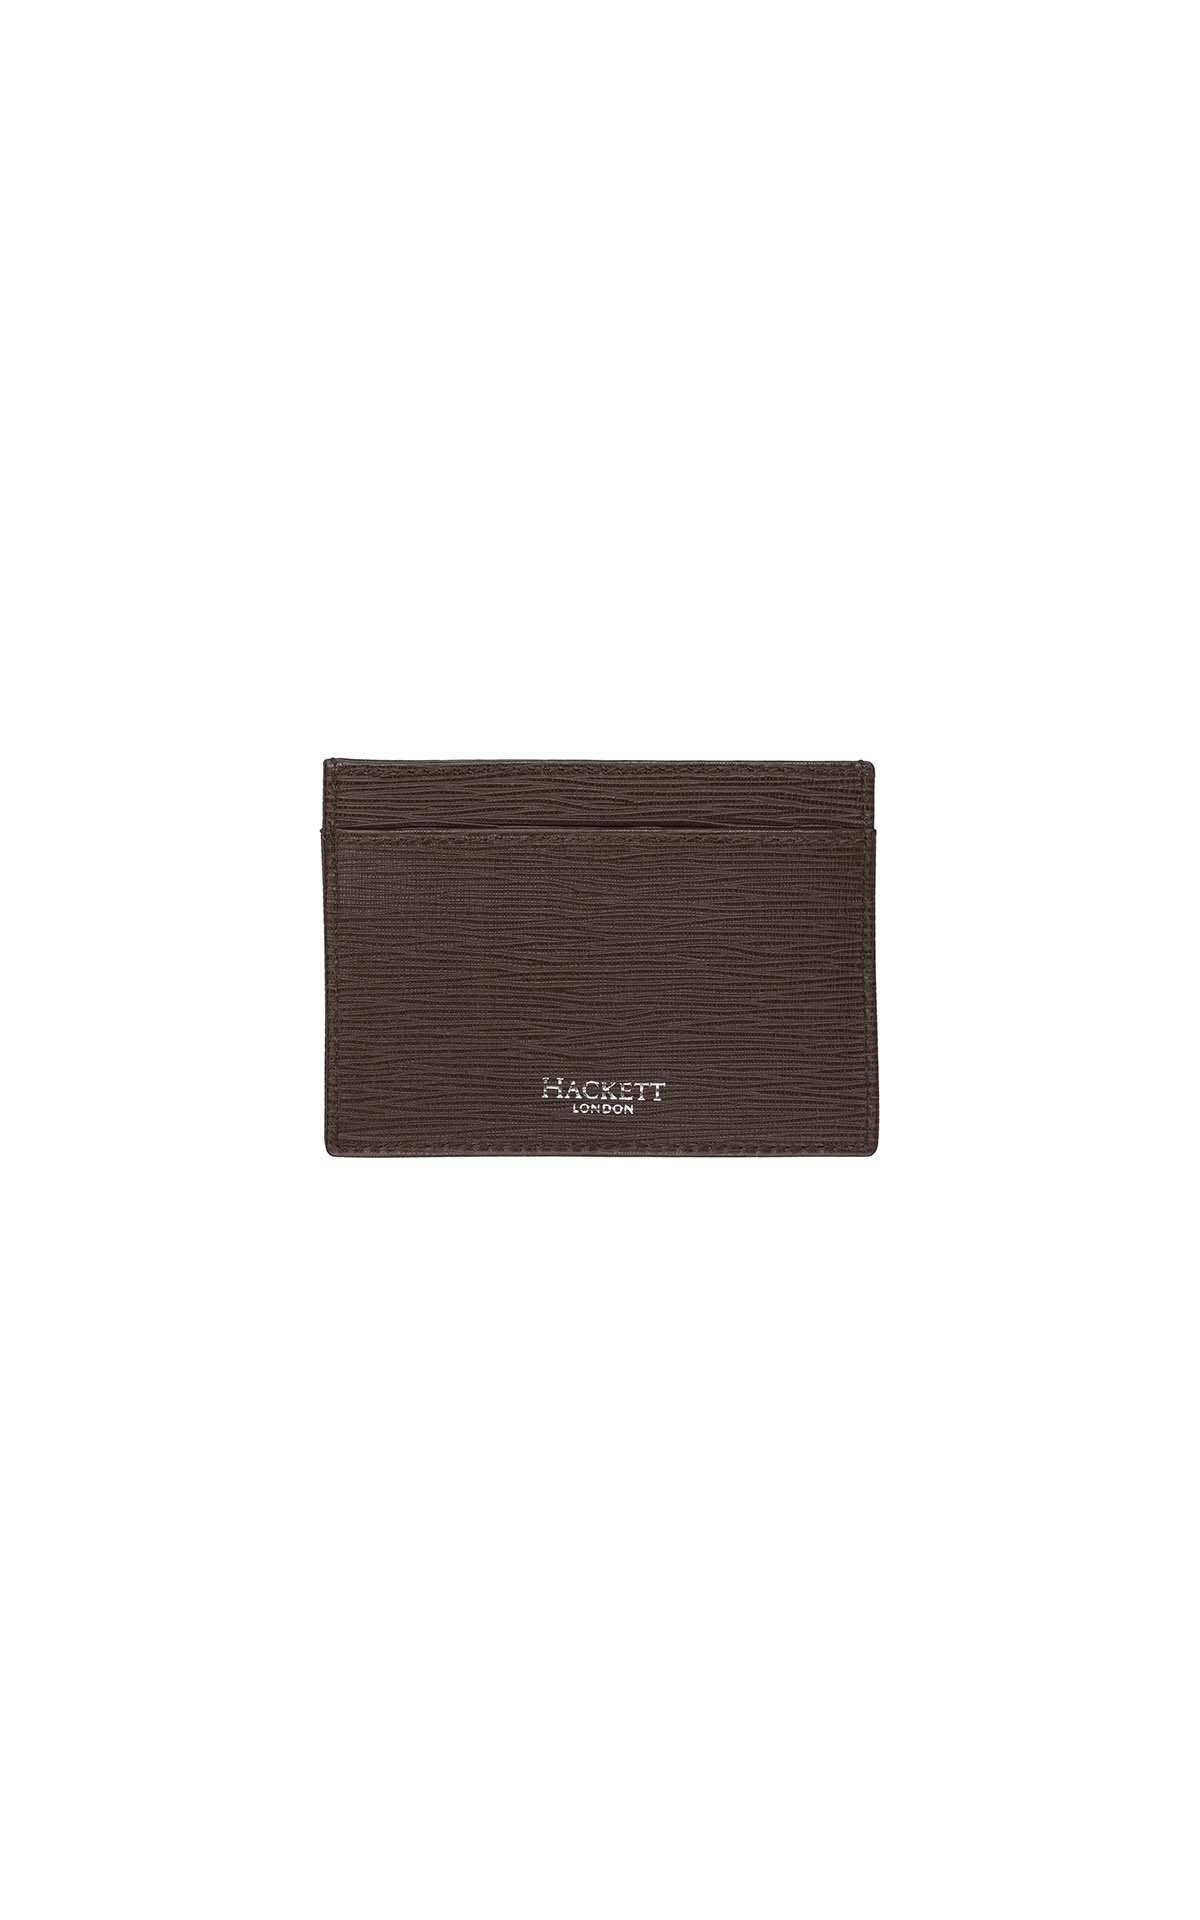 Hackett London Curzon card holder